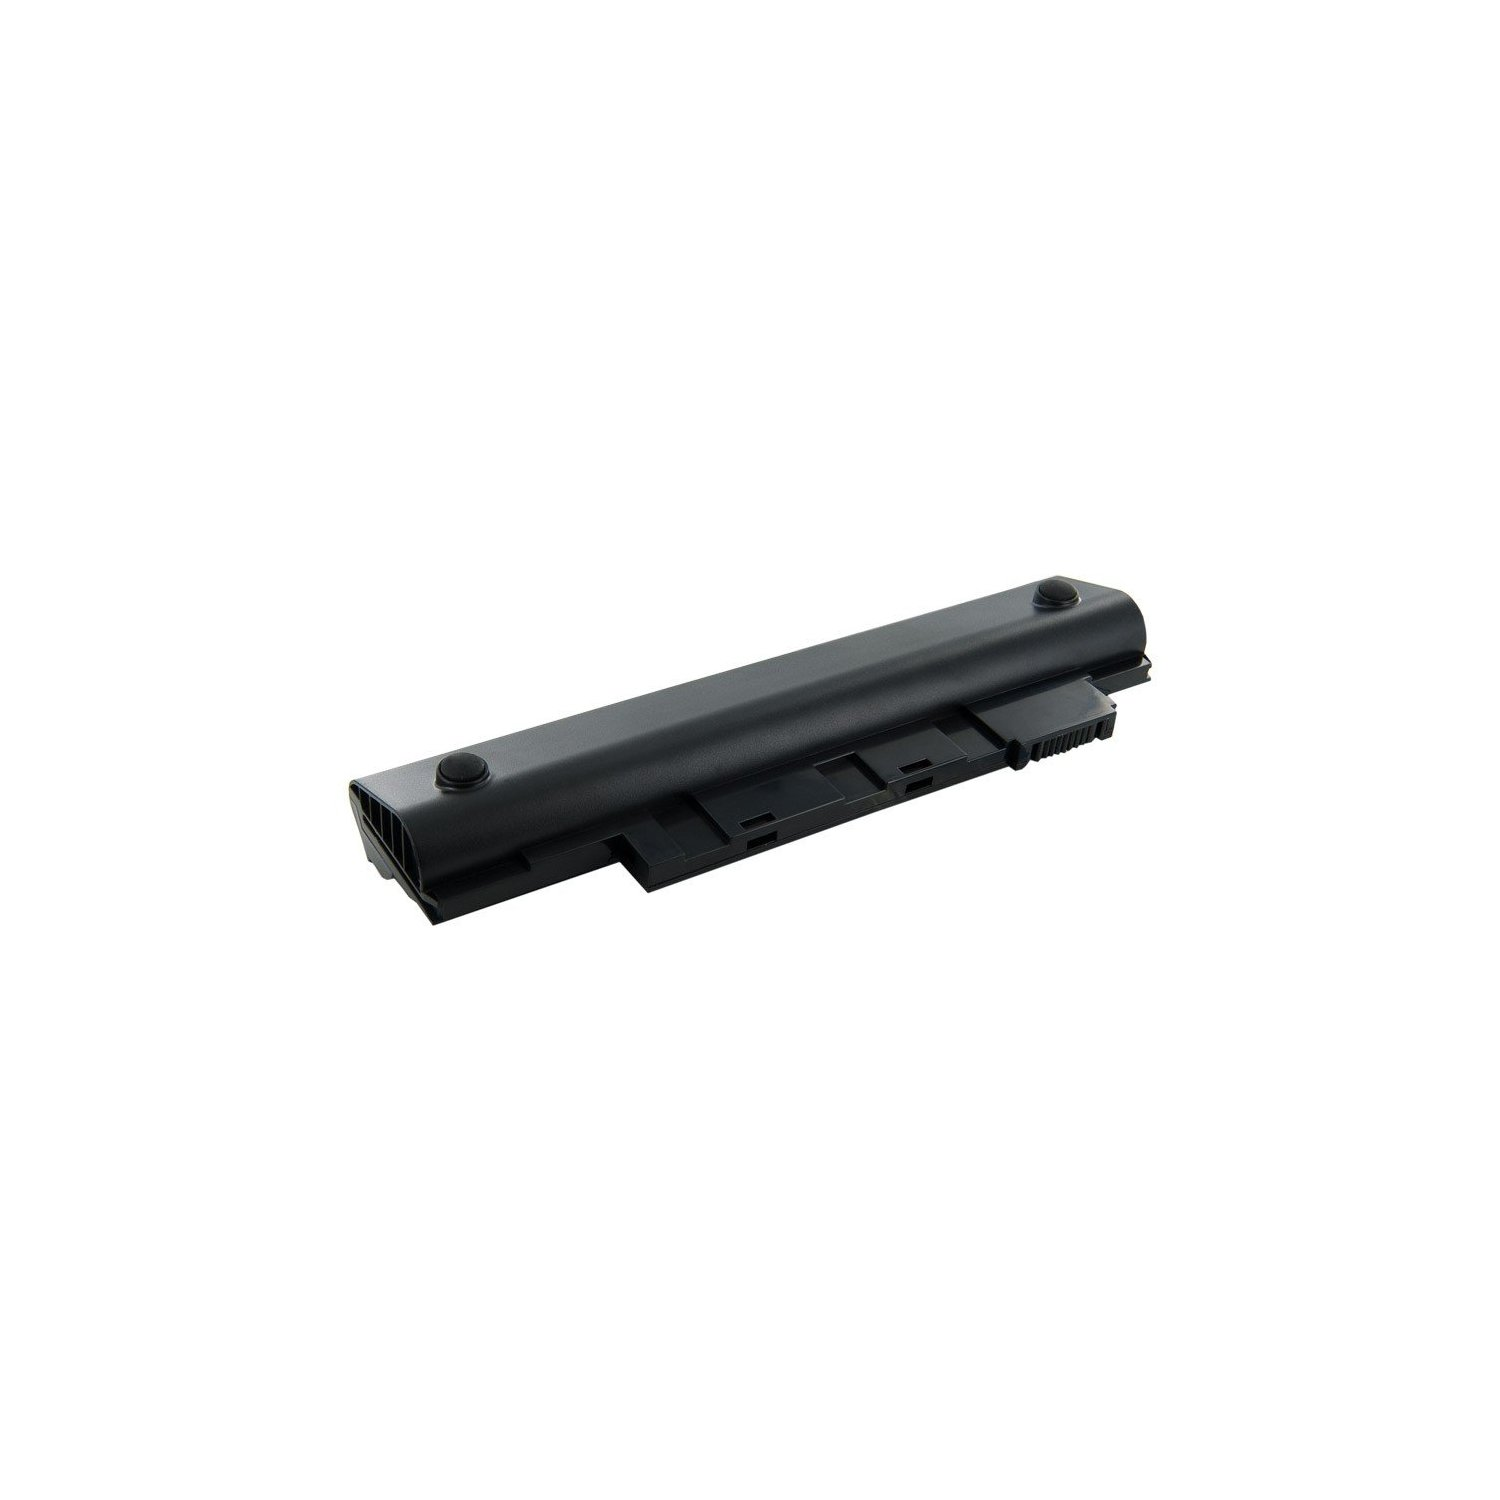 Acer Aspire One D260: New Laptop Replacement Battery for ACER Aspire One D260 Aspire One D260-2028 Aspire One D260-2097,6 cells